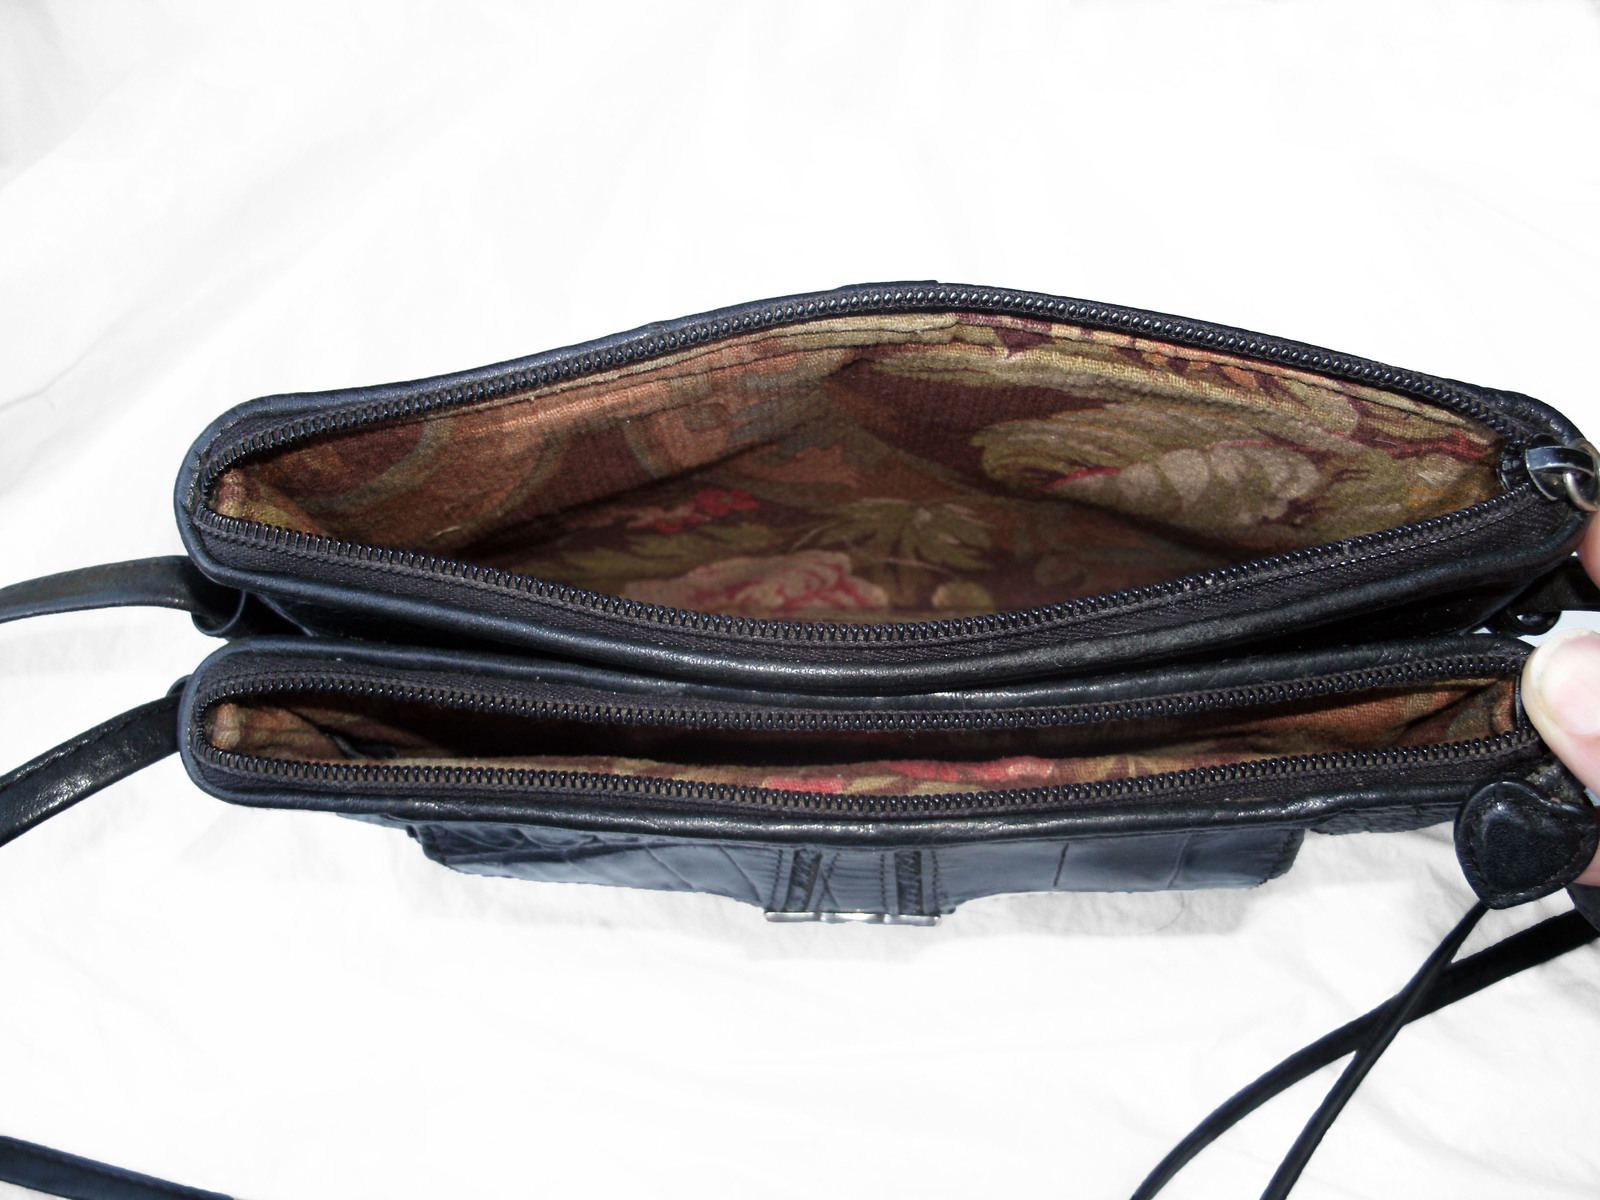 Brighton Croc and Pebbled Leather Cross Body Organizer Bag Black Silver Wallet image 12